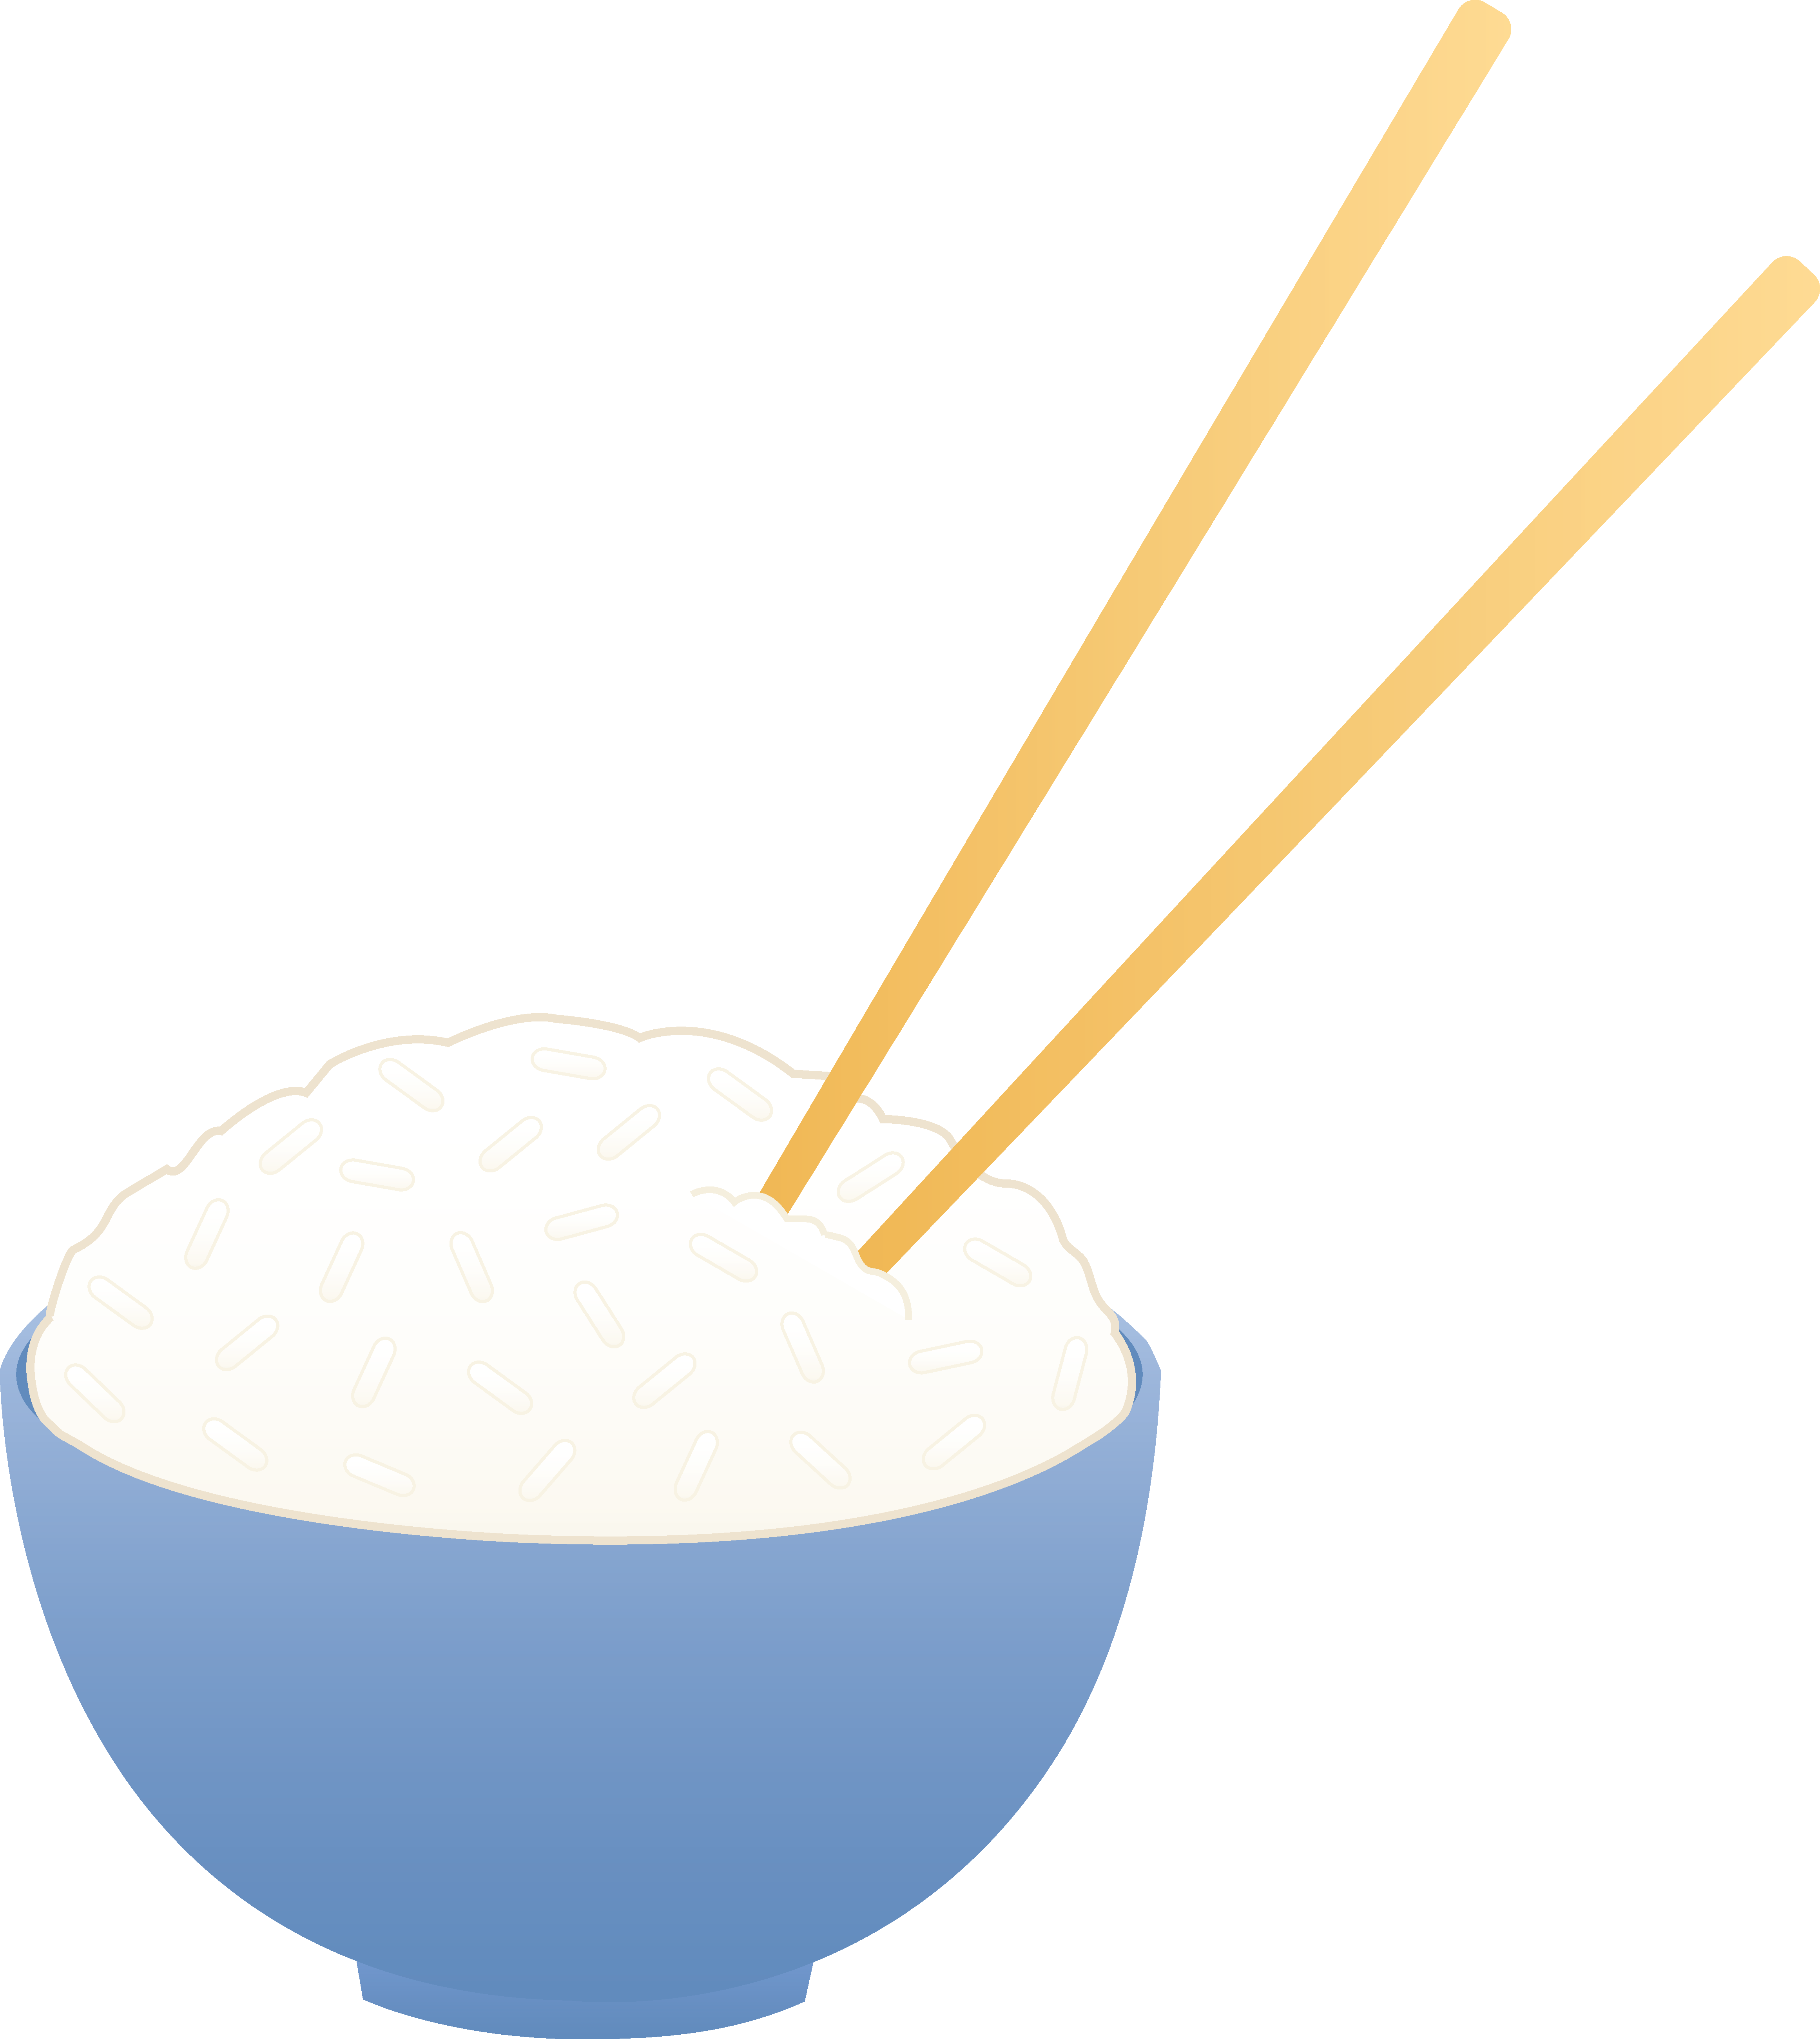 rice_chopsticks_bowl